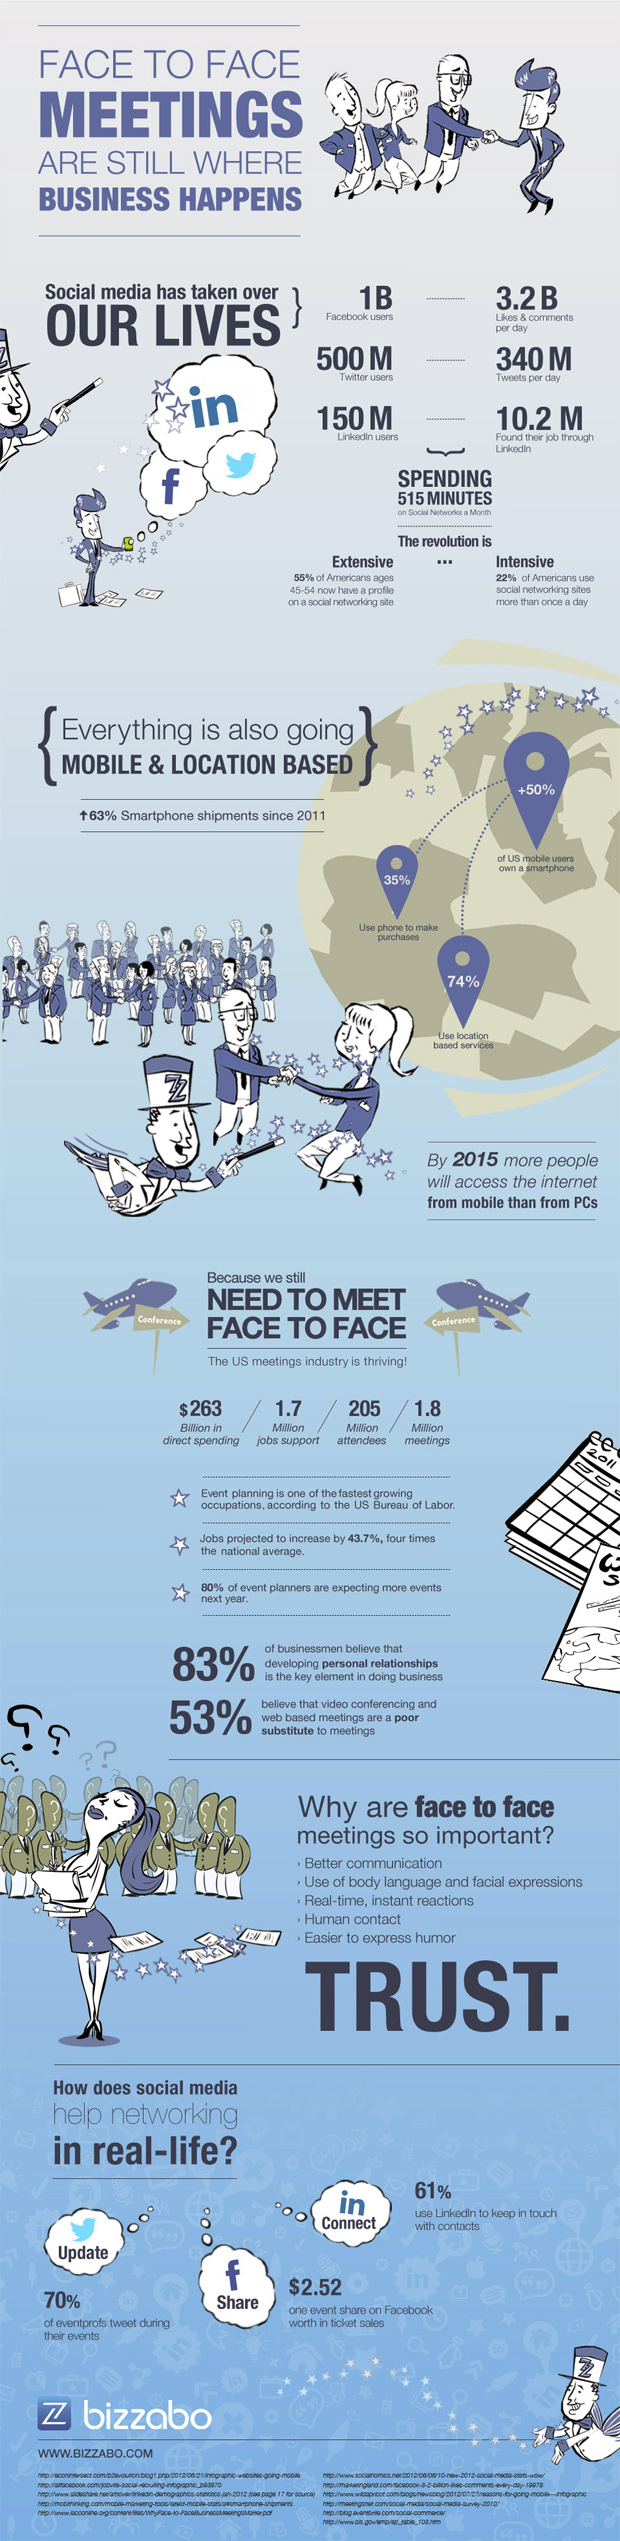 face-to-face-meetings-infographic